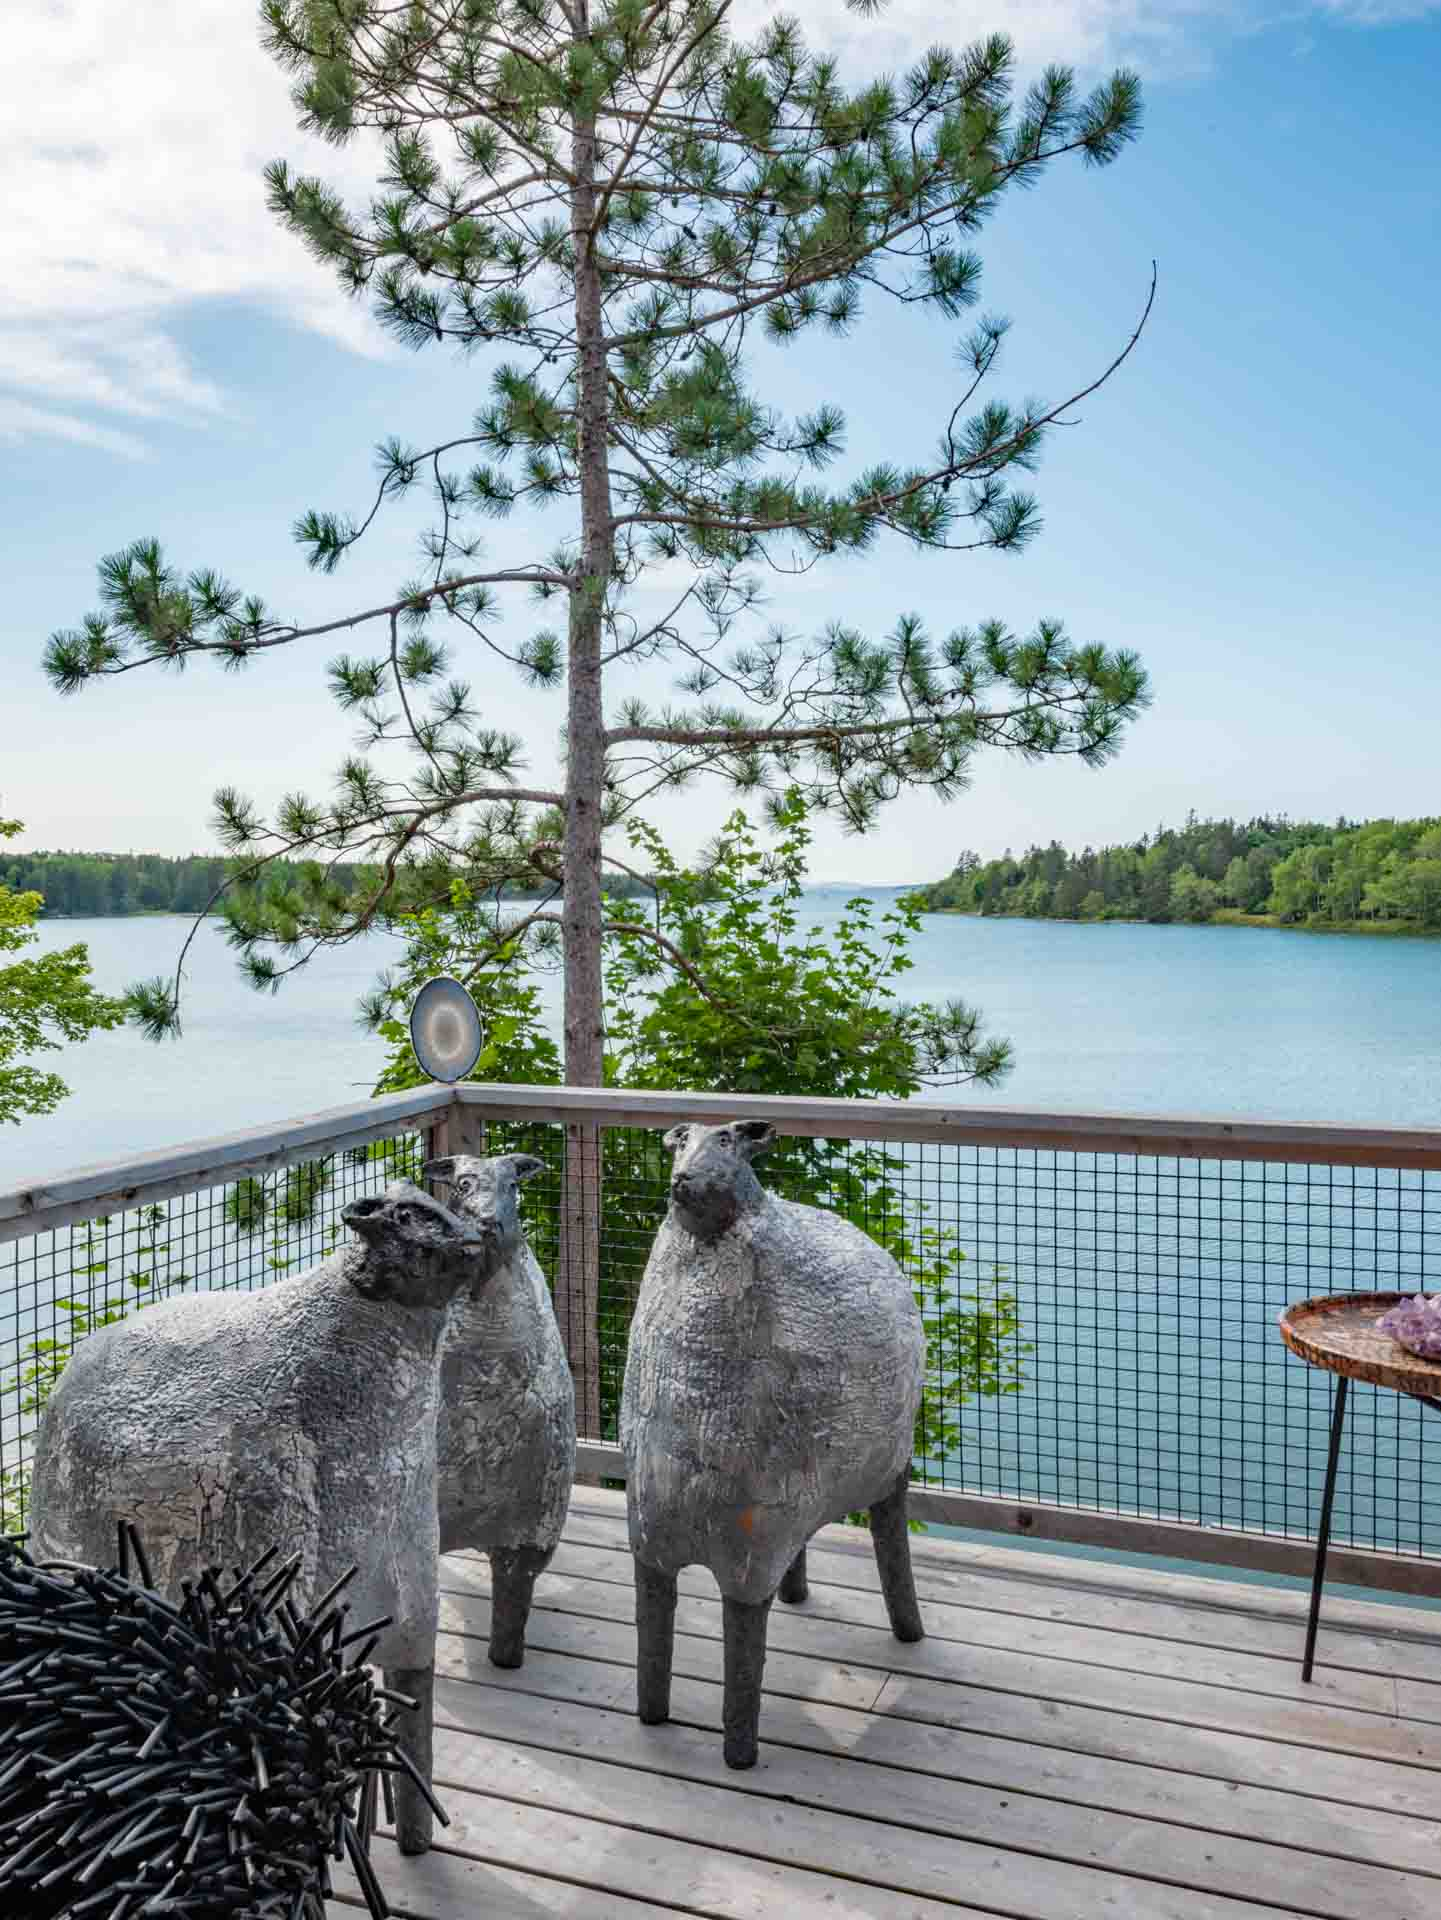 Mark Chatterley Sheep on the deck